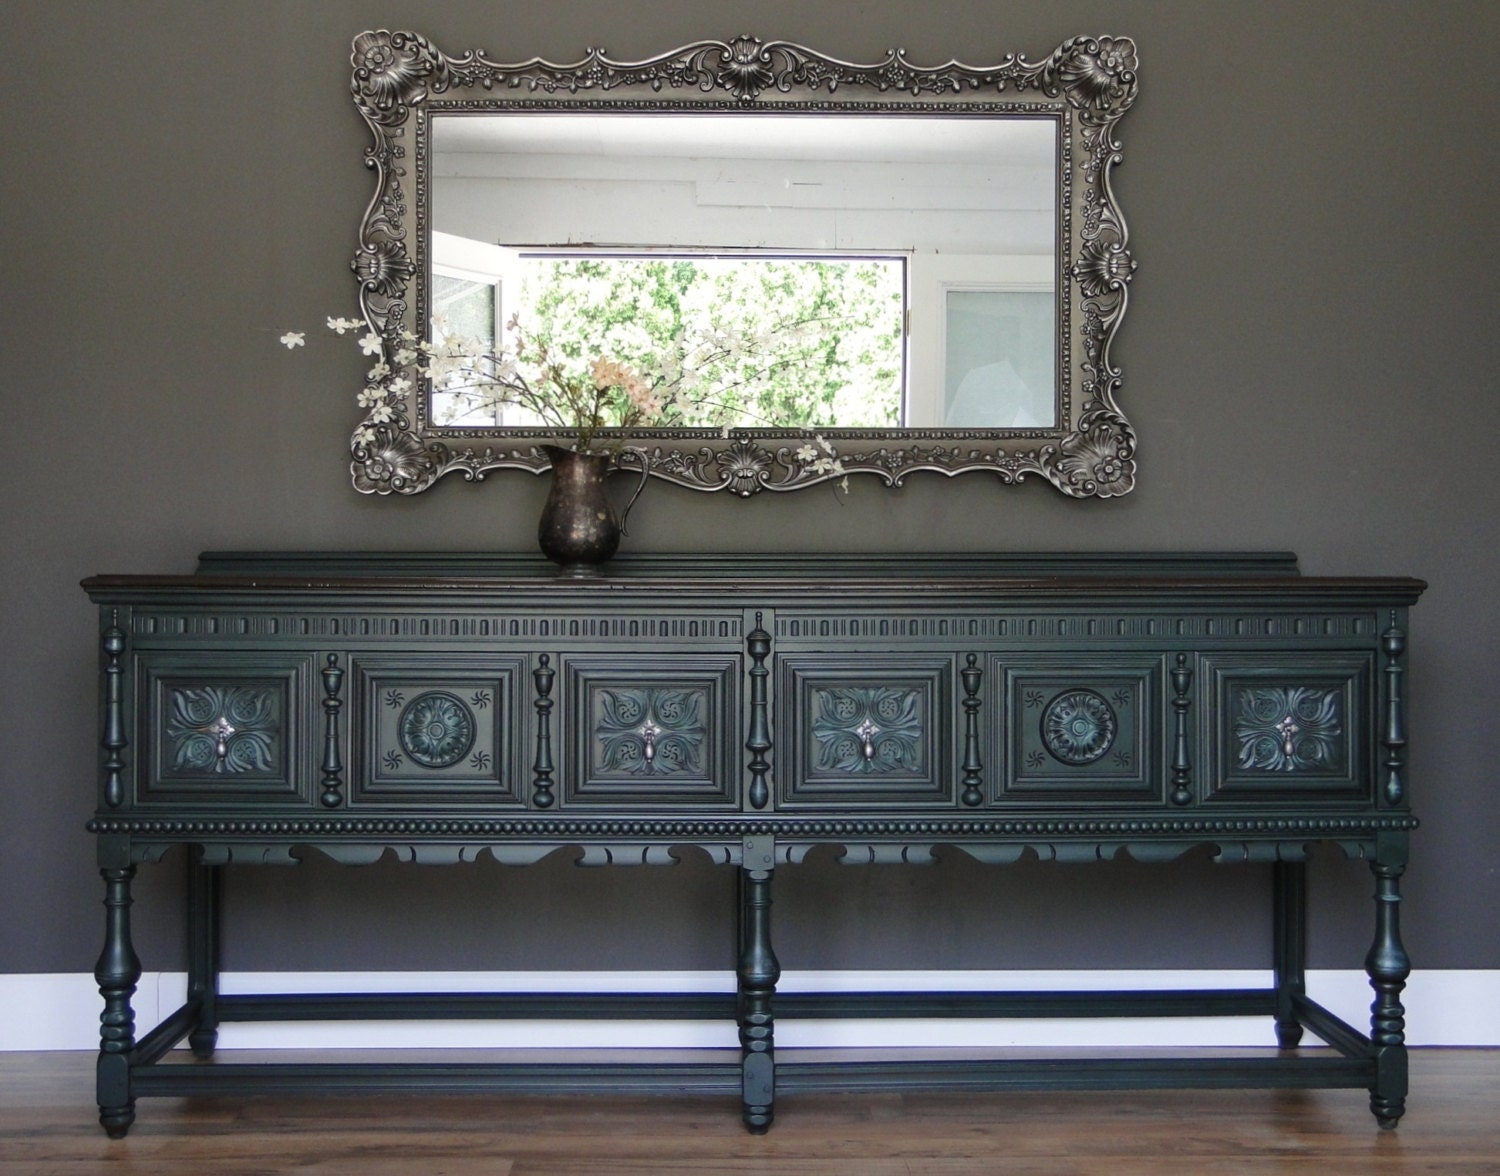 SOLD Large Antique Ornate Buffet Sideboard Entry by TRWpainted